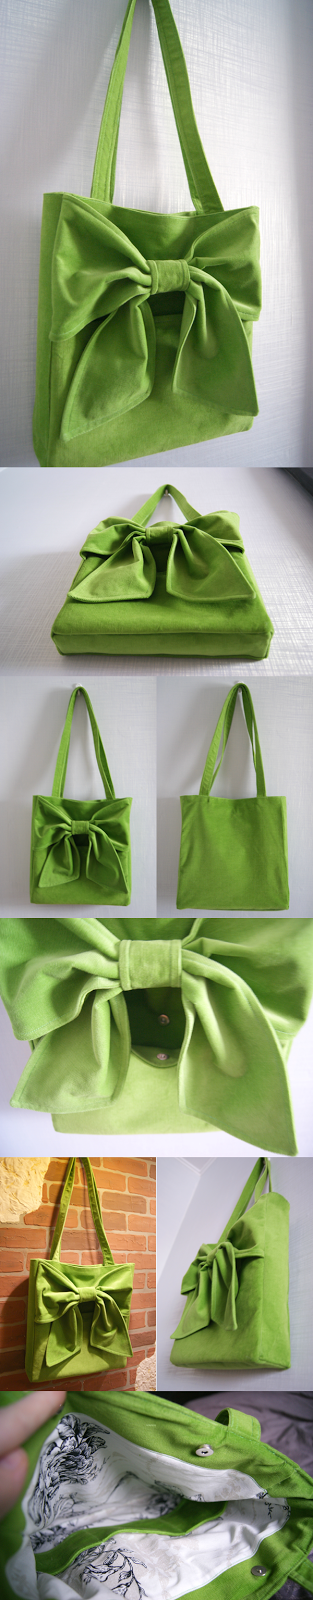 green velvet bag with a bow